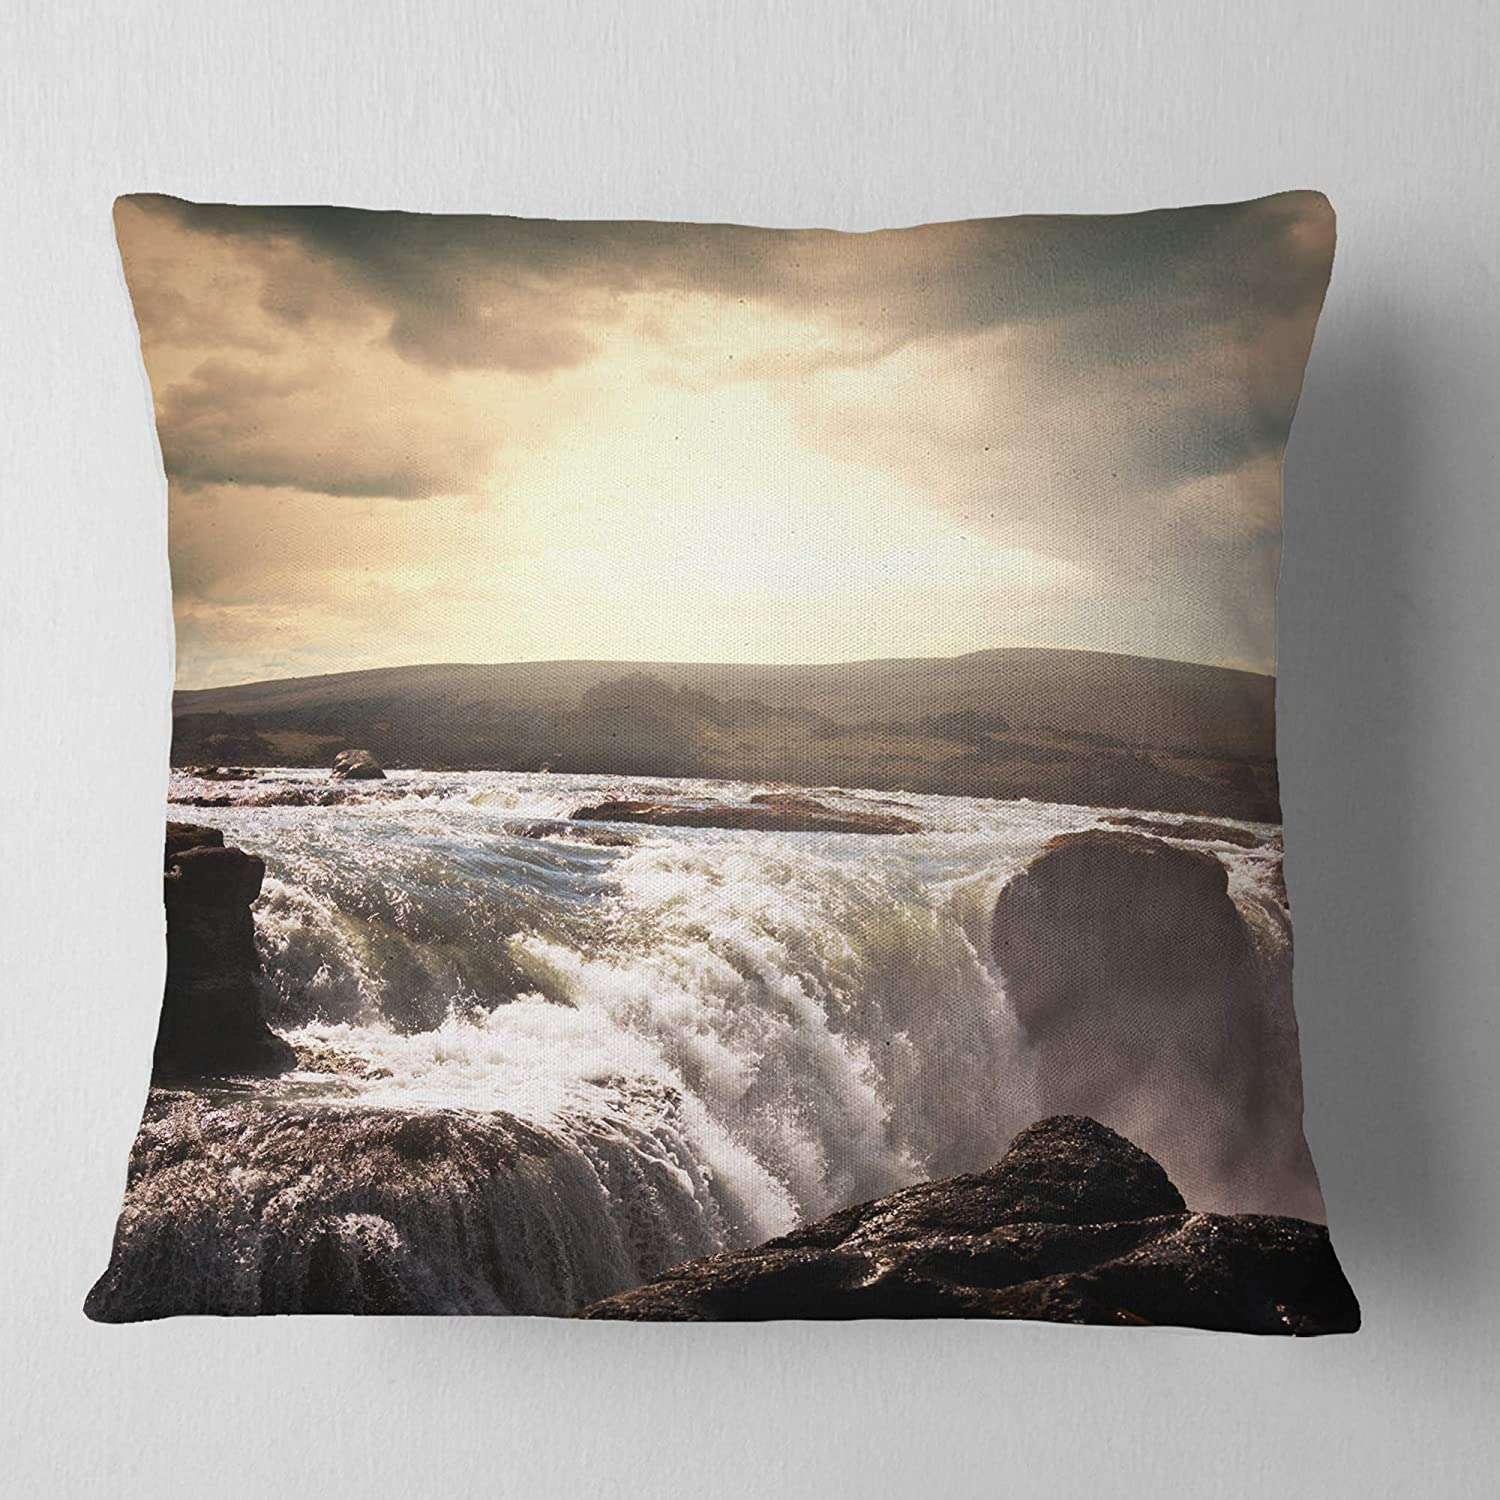 Kess InHouse Chelsea Victoria Ocean Love Photography Blue 23 x 23 Square Floor Pillow